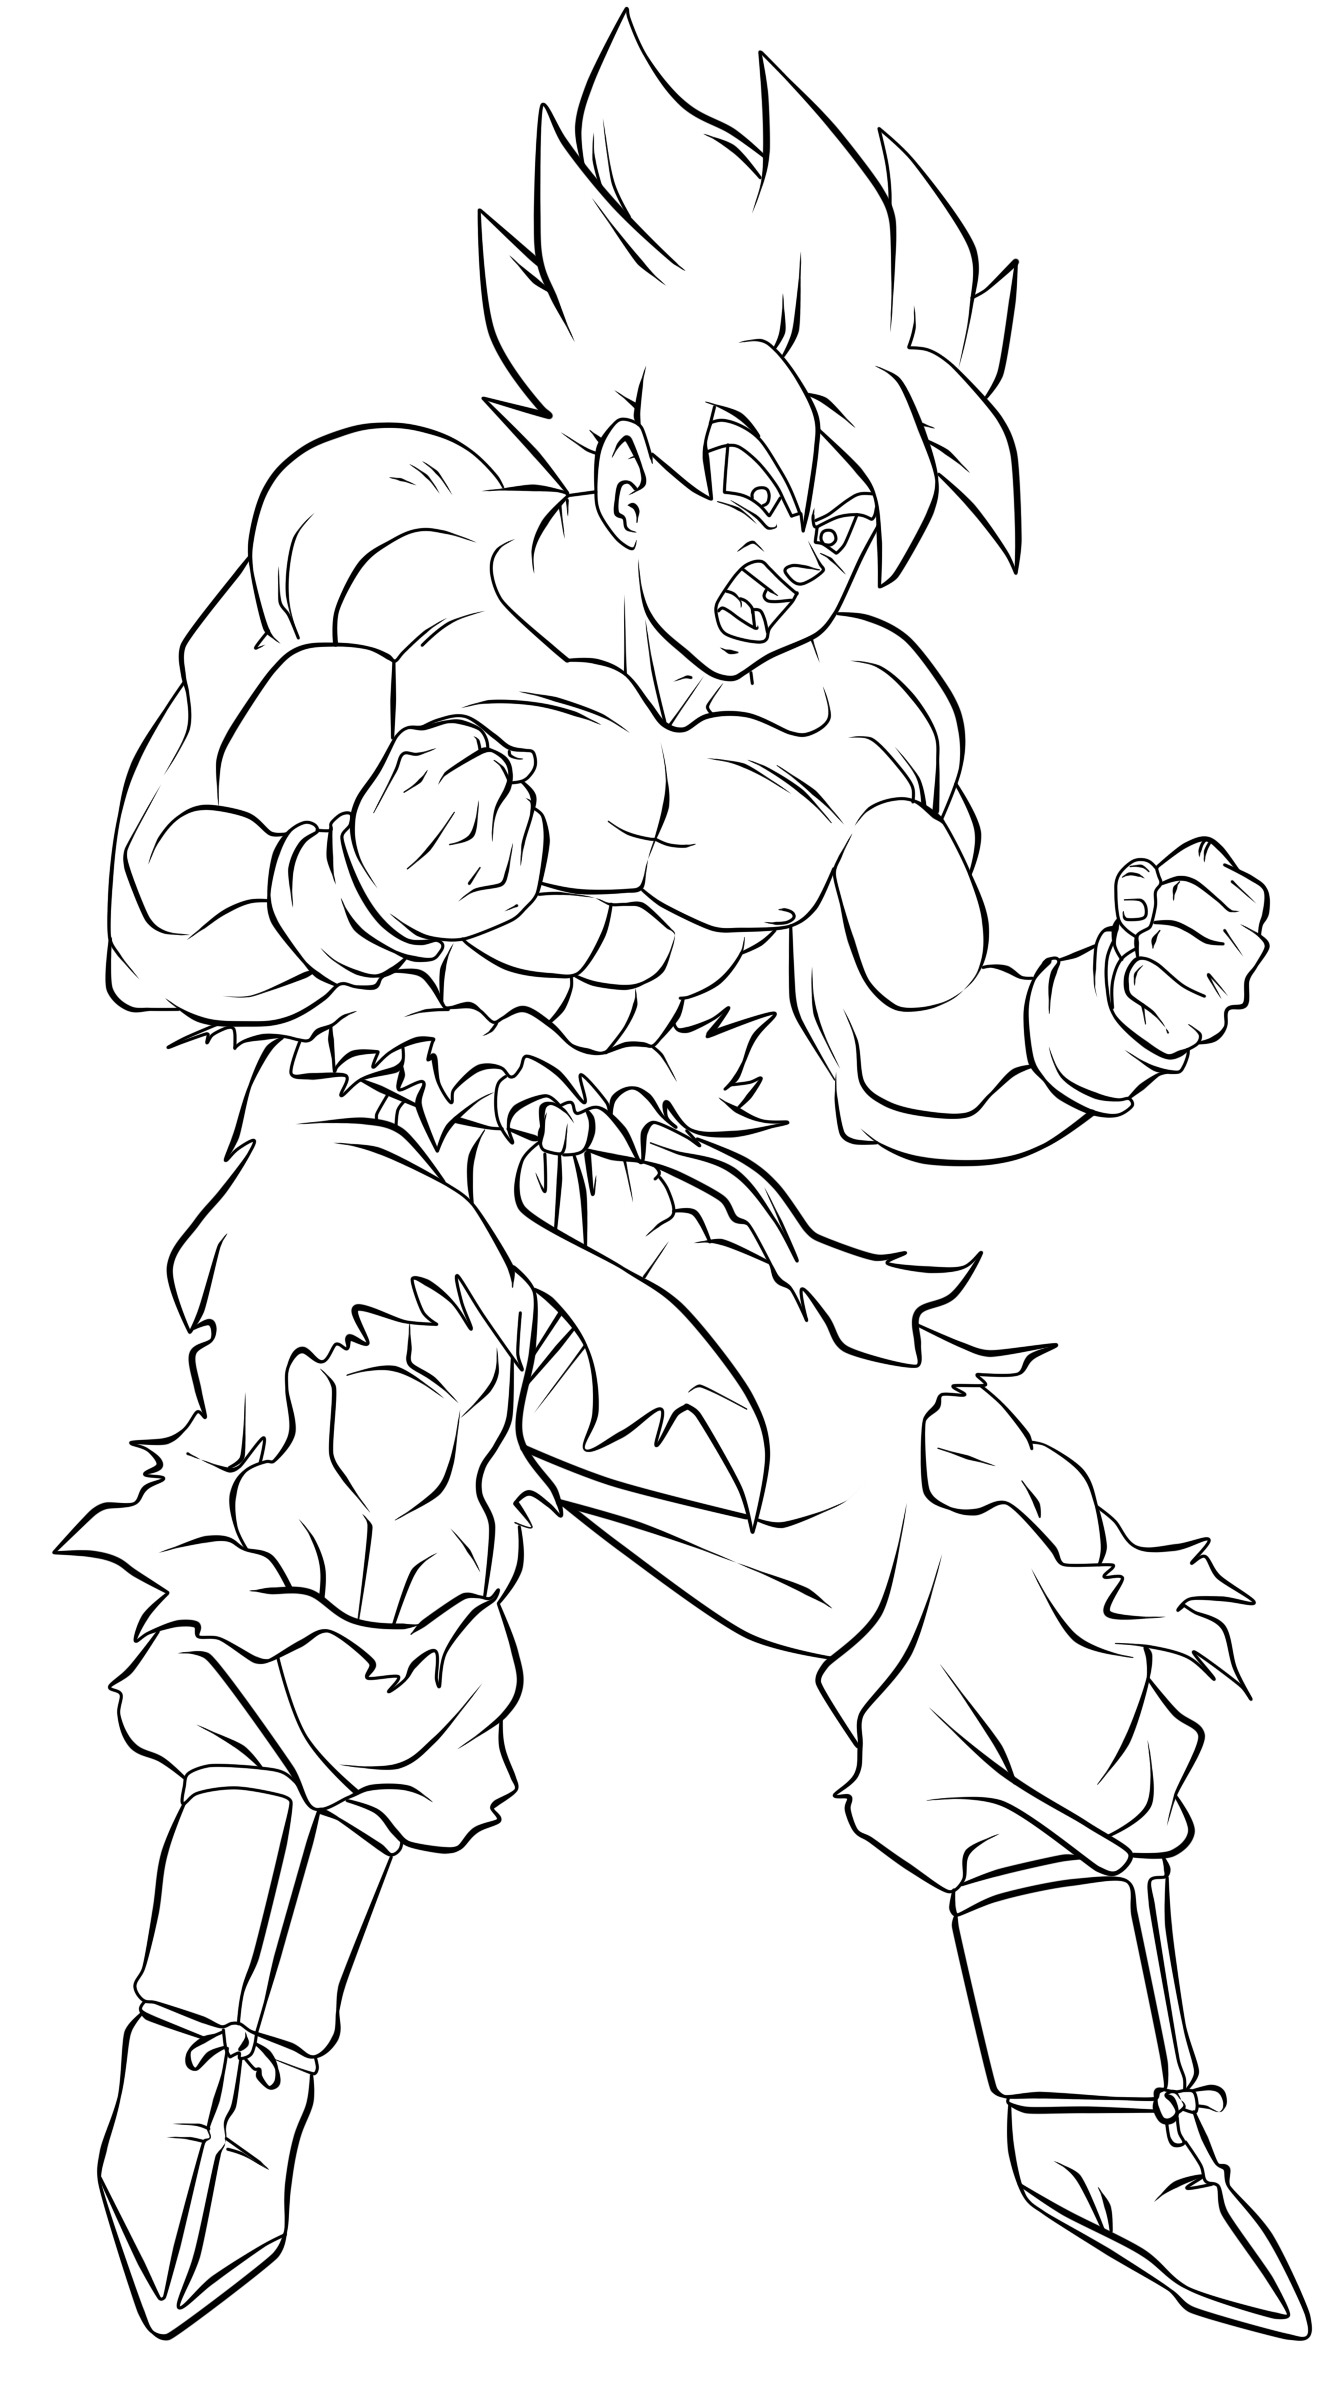 1332x2397 Image Titled Draw Goku Step 30. Vectors Archive Anime Forum Dot